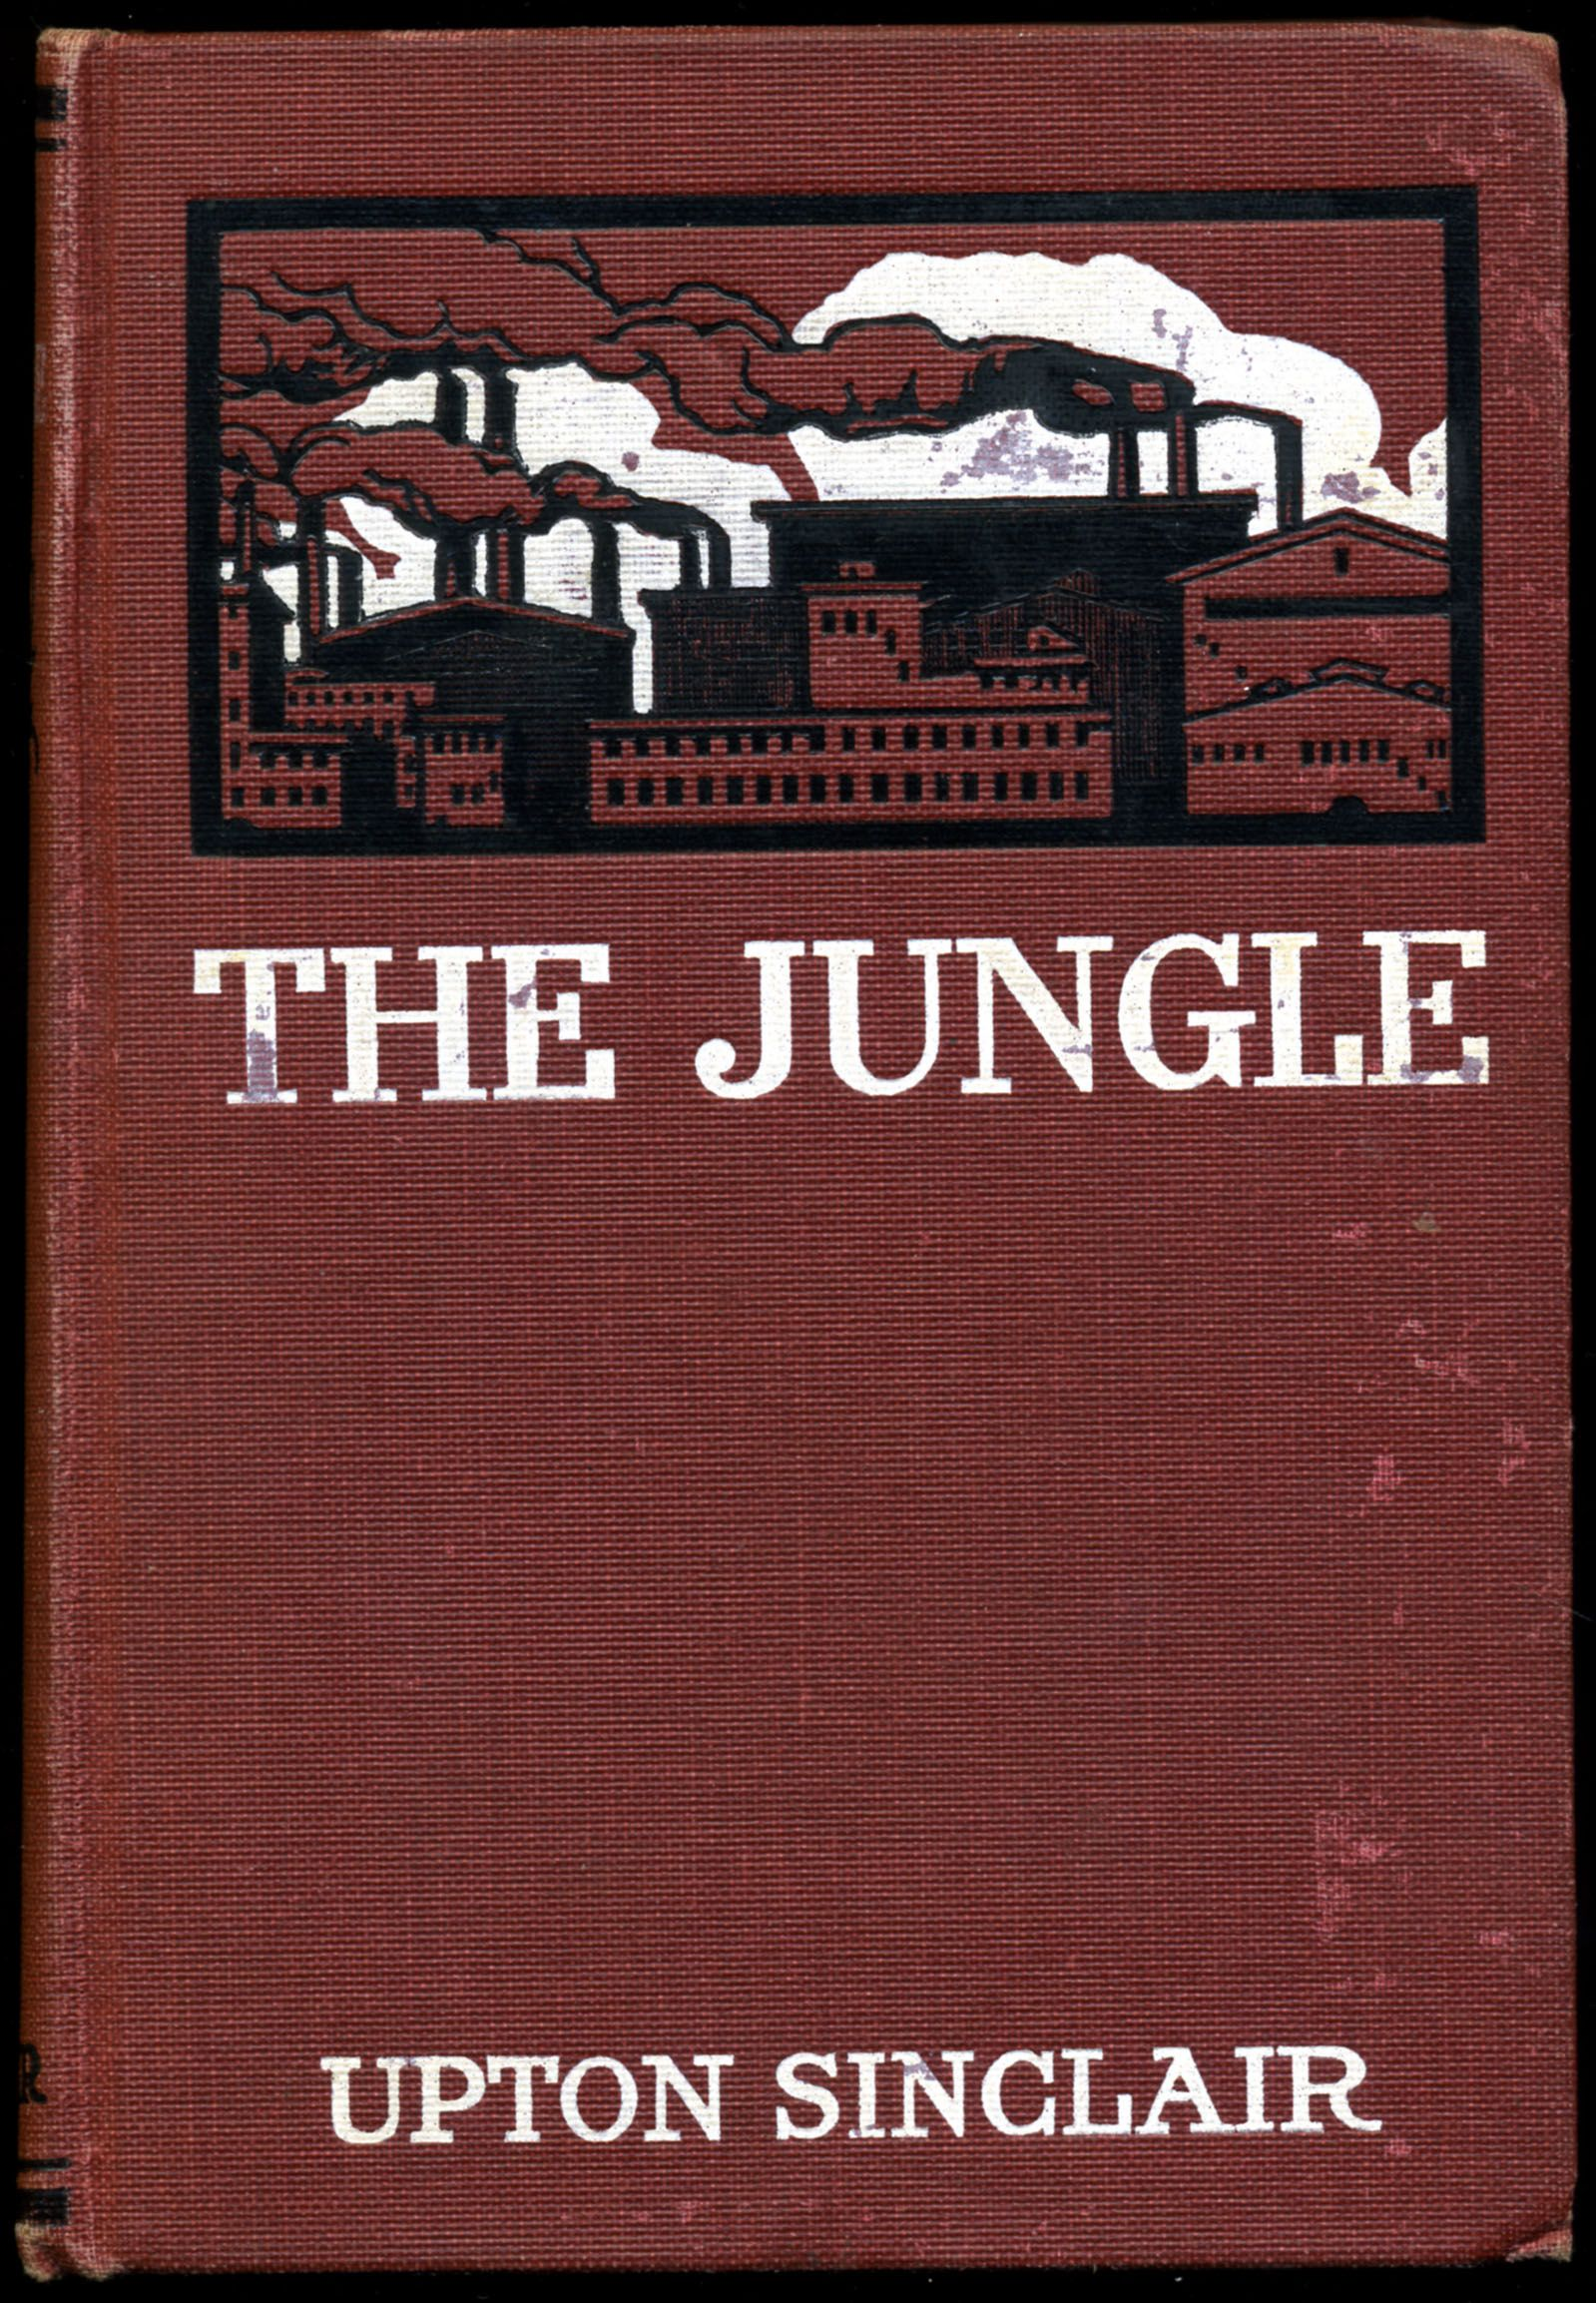 a review of upton sinclairs book the jungle The jungle is a 1906 novel written by the american journalist and novelist upton sinclair (1878-1968) sinclair wrote the novel to portray the harsh conditions and exploited lives of immigrants in the united states in chicago and similar industrialized cities.